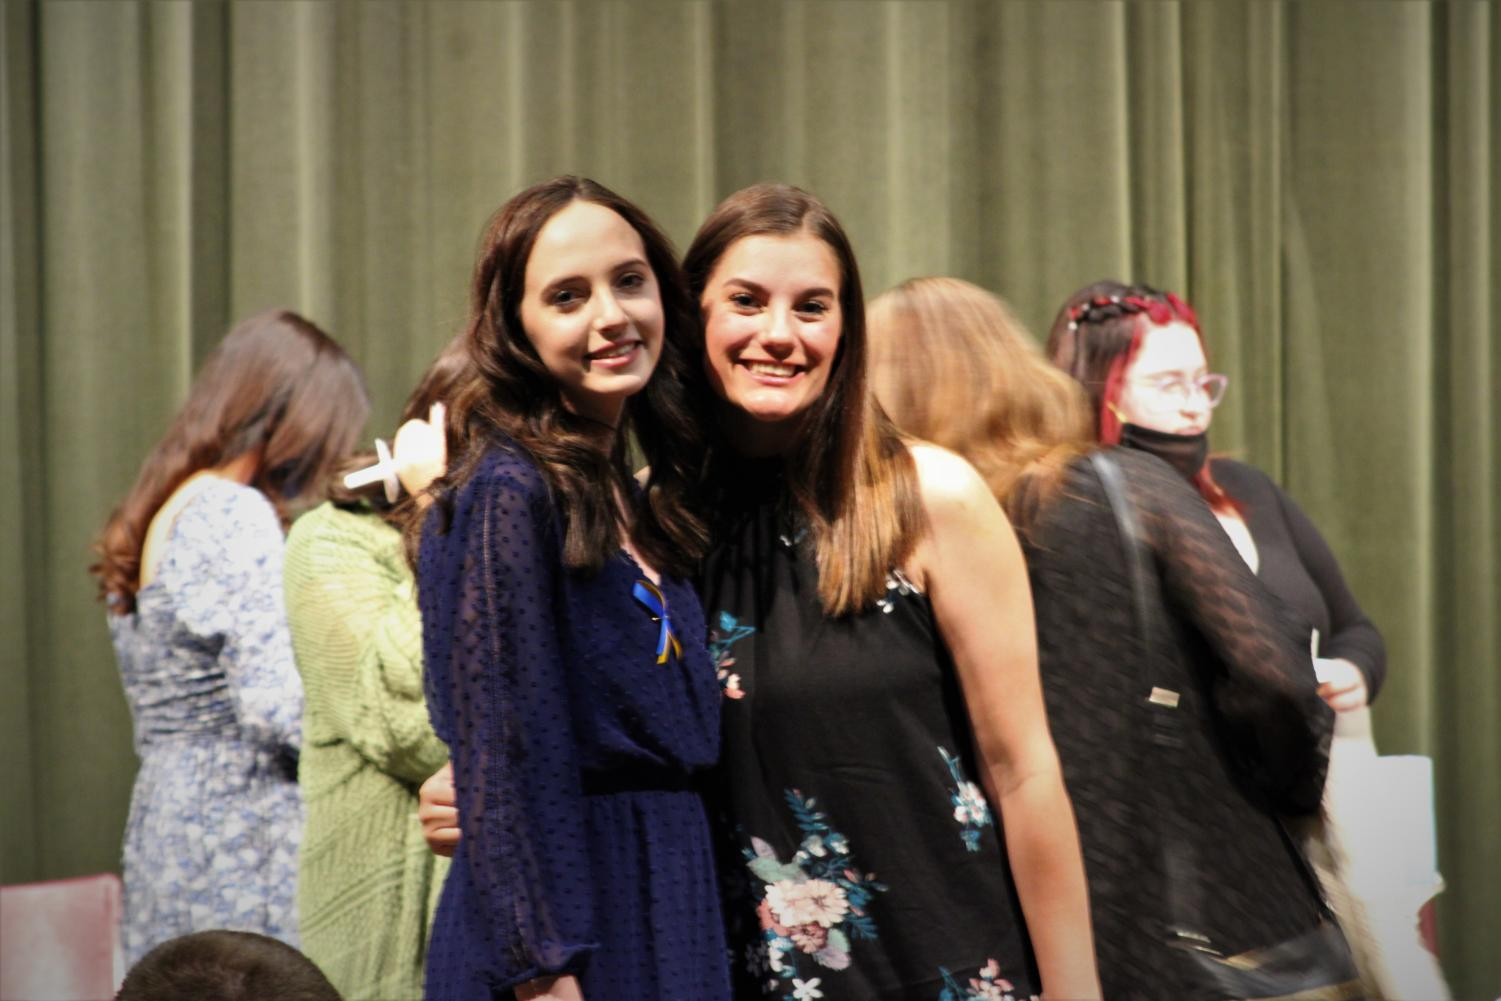 NHS+Inductions+4%2F14%2F21+%28Photos+by+Trenten+Wilder%29